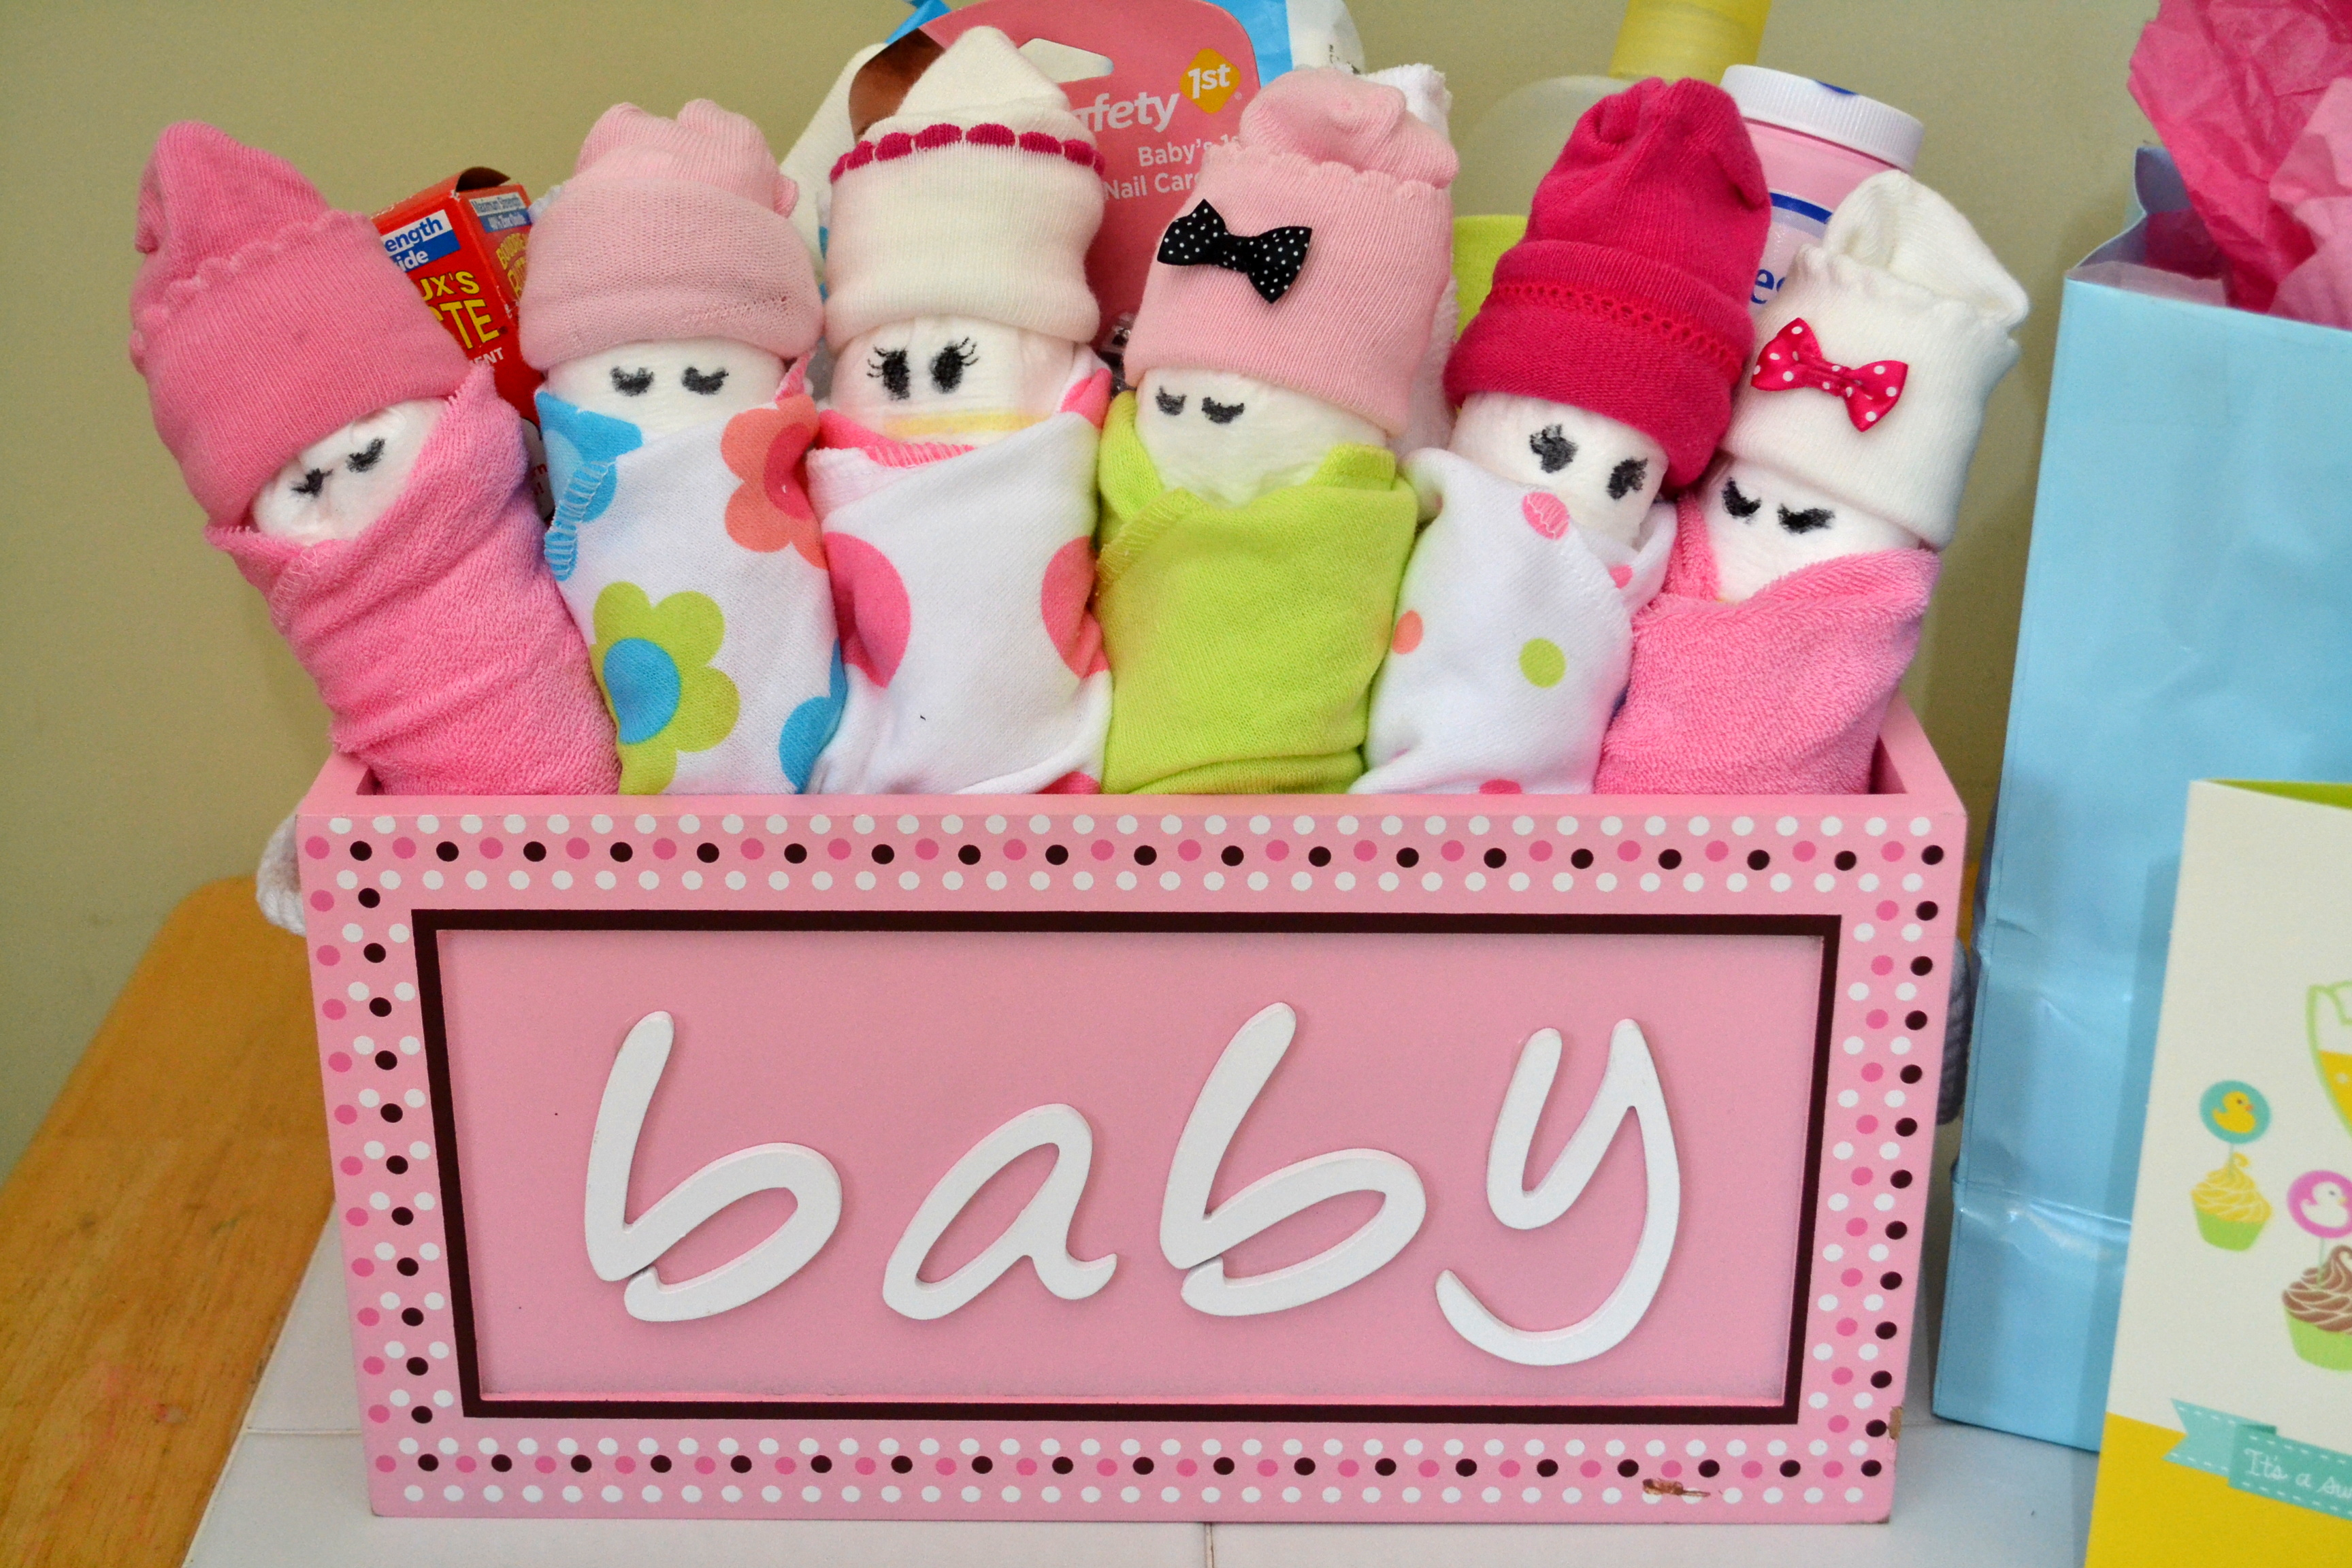 Full Size of Baby Shower:36+ Creative Baby Shower Gift Ideas Photo Designs Baby Shower Gift Ideas Essential Baby Shower Gifts Diy Babies Baby Shower Gifts Babies